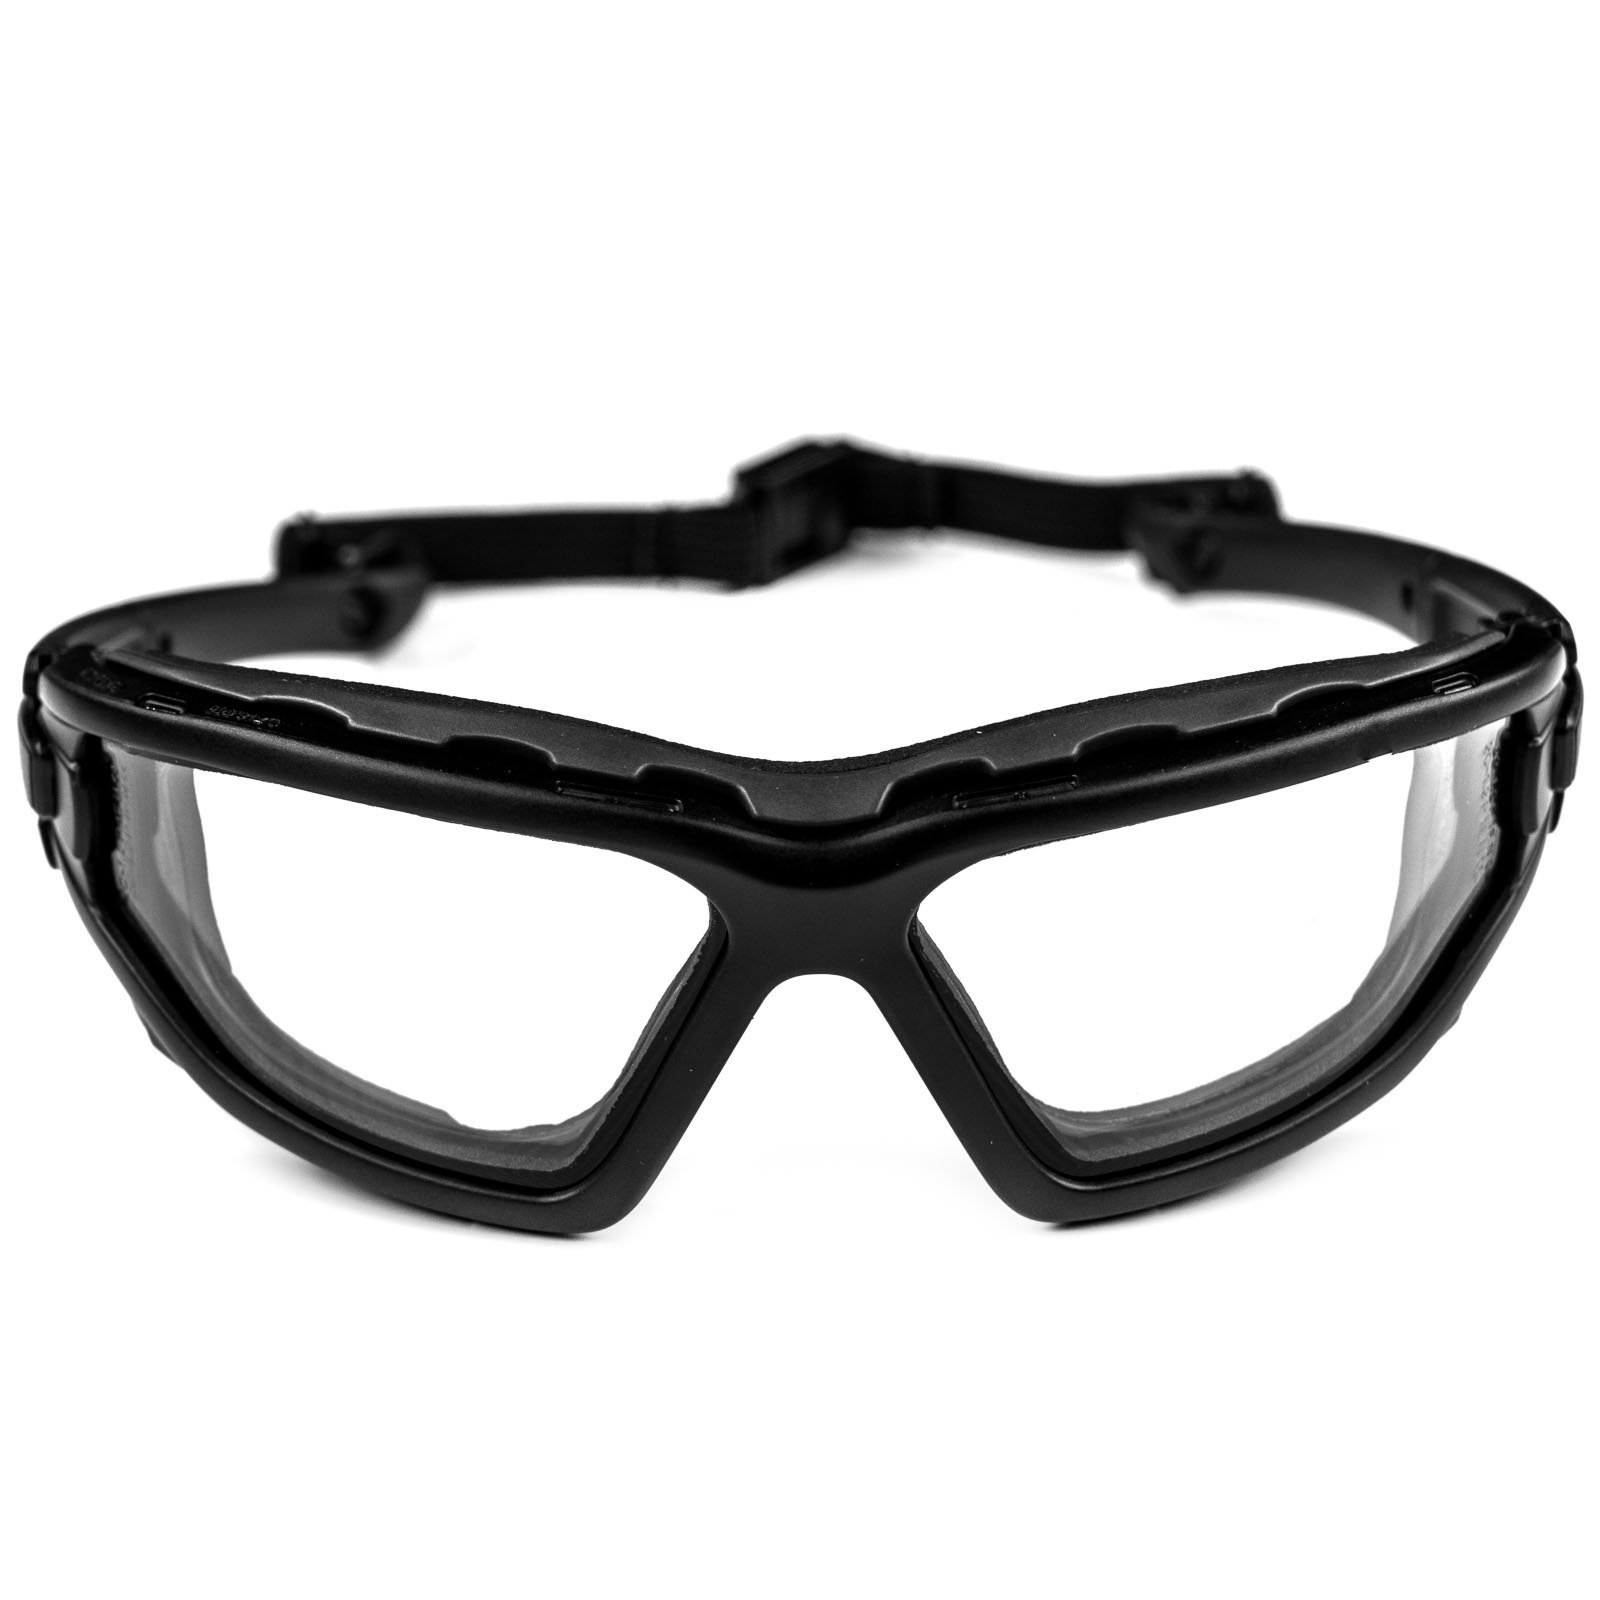 Novritsch Antifog Goggles - Low profile